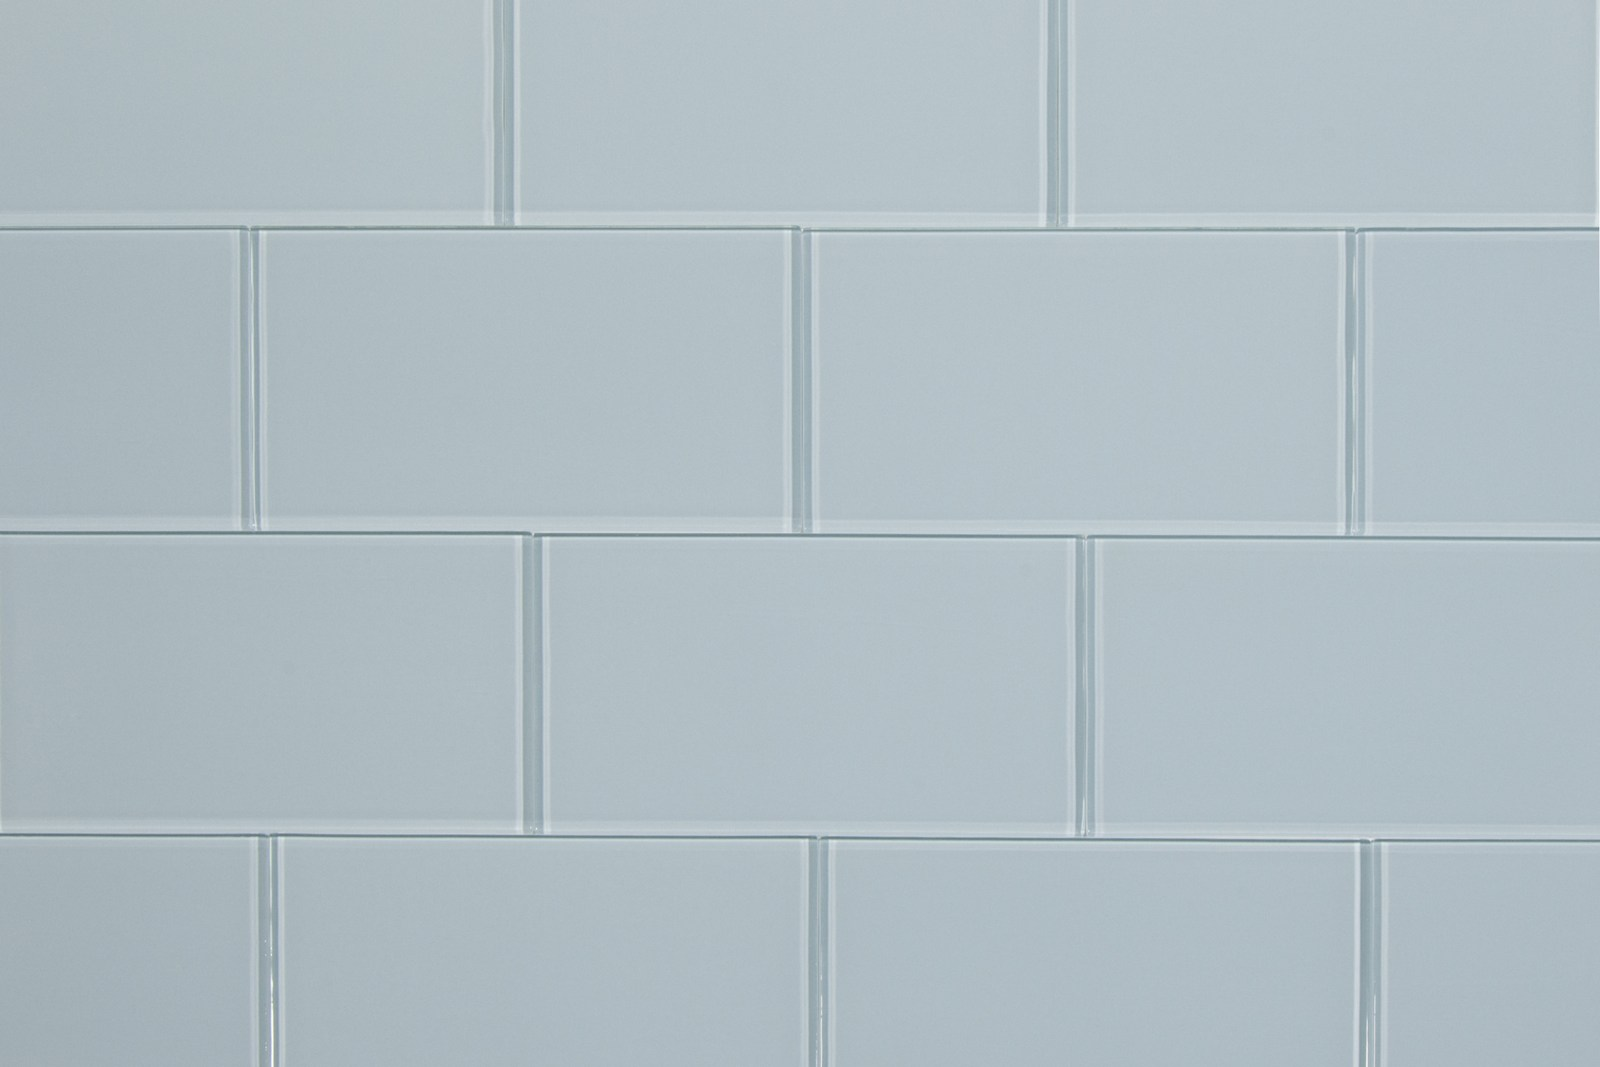 Slimglass 3 X 6 Aqua Glass Subway Tile Storka